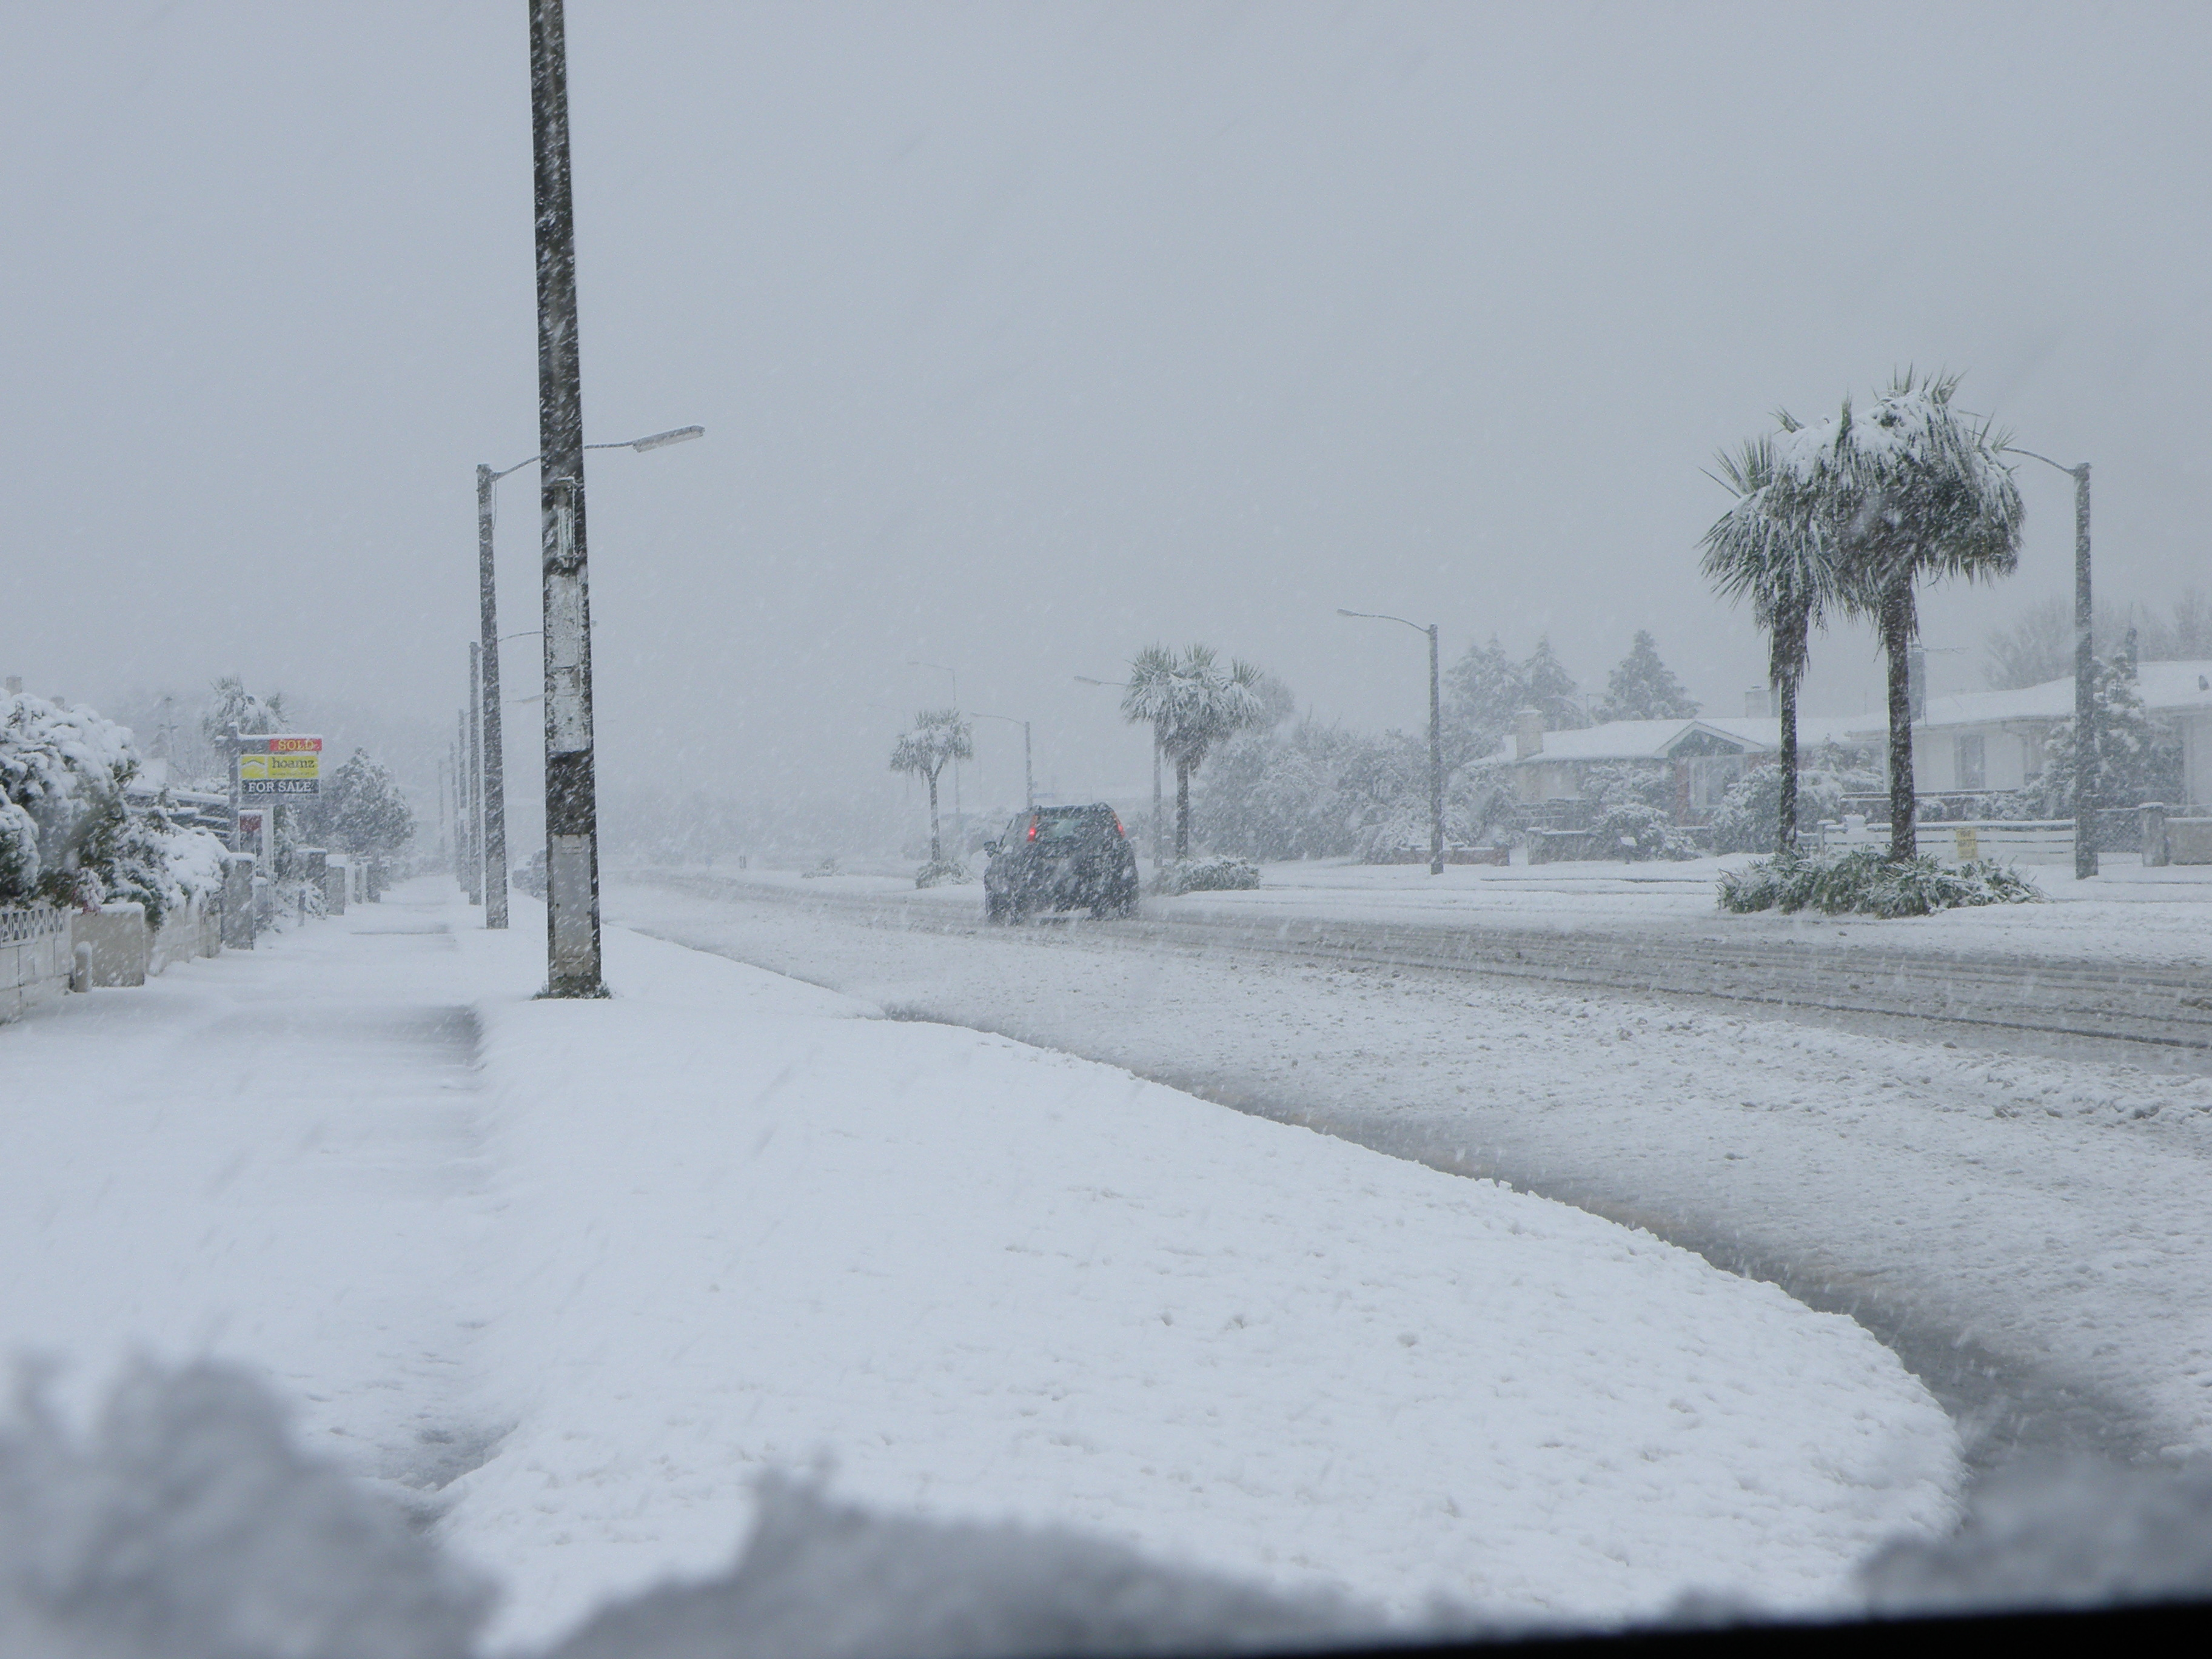 The Day Invercargill Got Snow And The Roof Of The Stadium